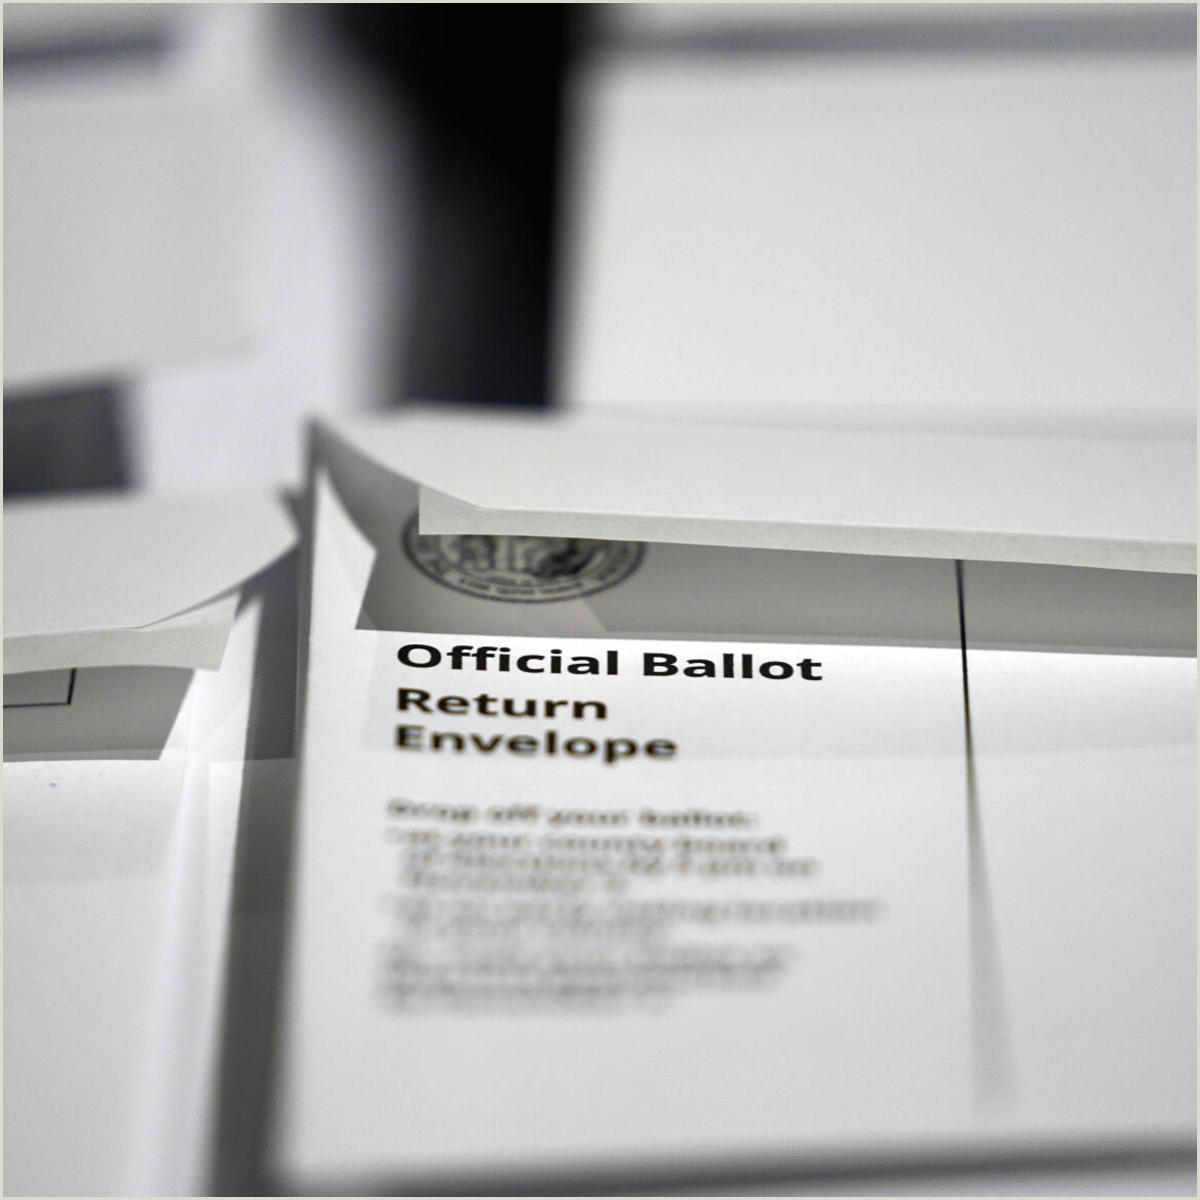 Best Business Cards Raleigh Thousands Of N C Voters Wait Weeks For Absentee Ballots